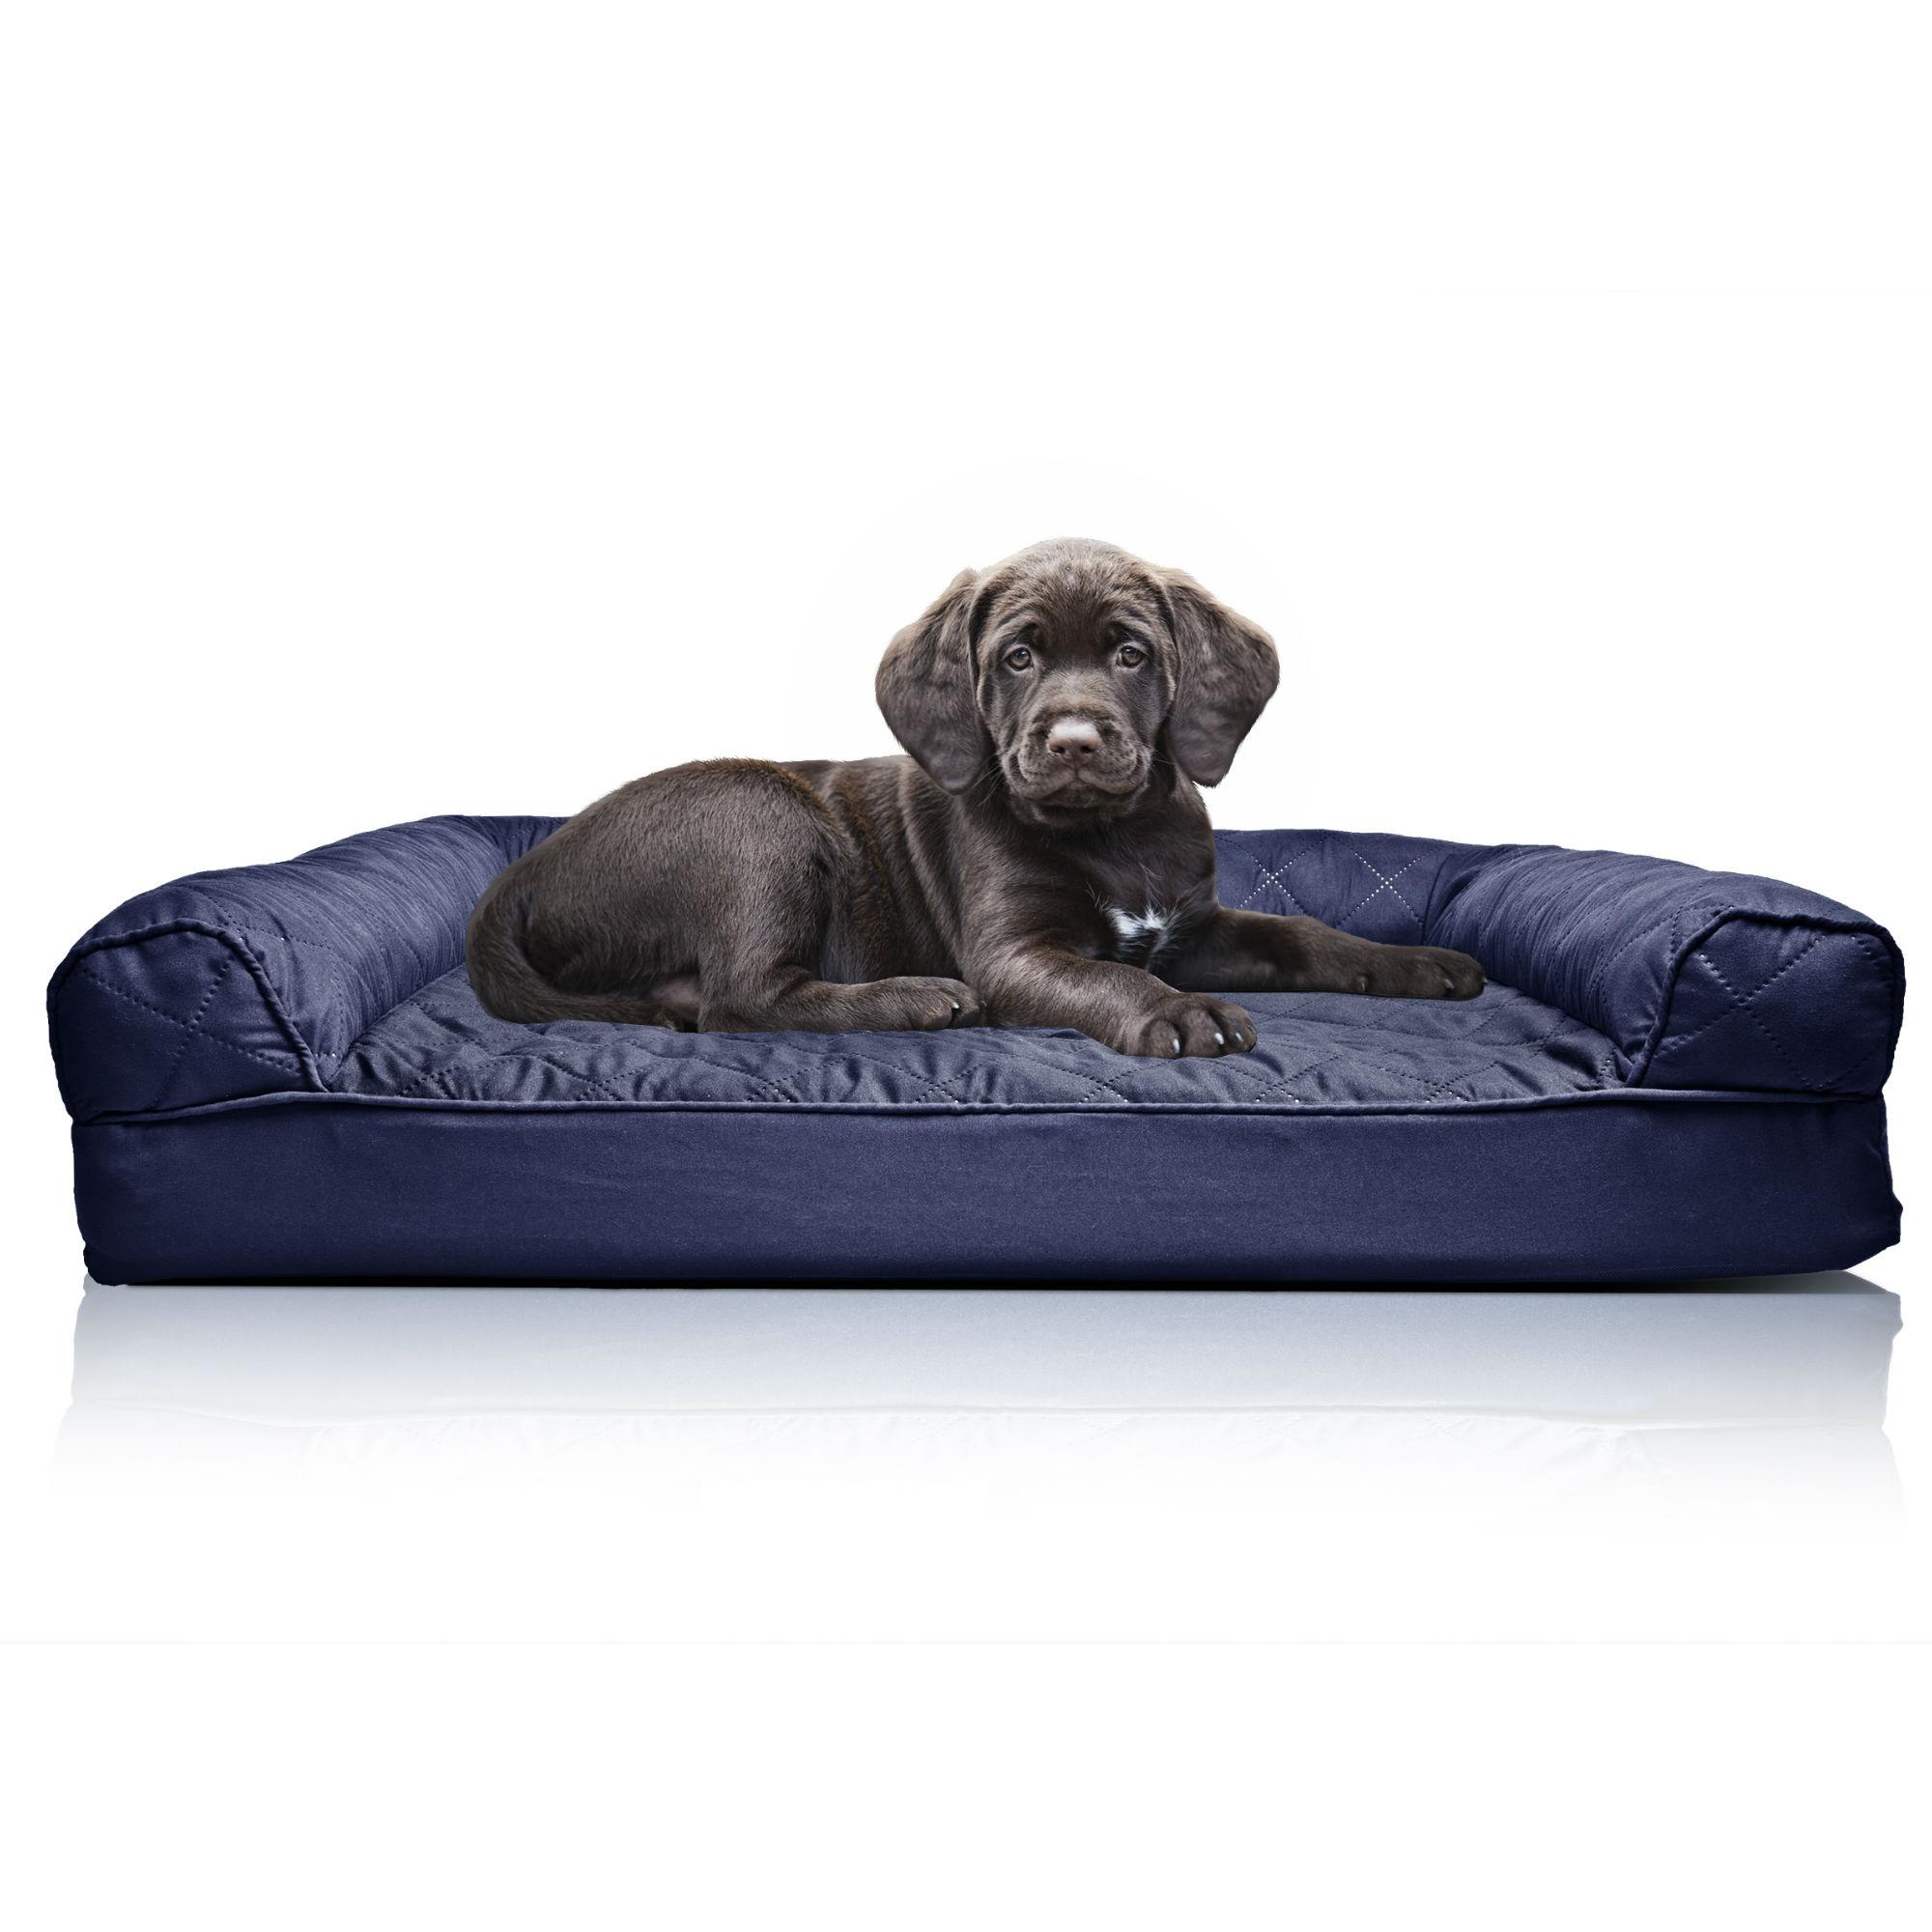 Furhaven Quilted Orthopedic Sofa Pet Bed - Navy